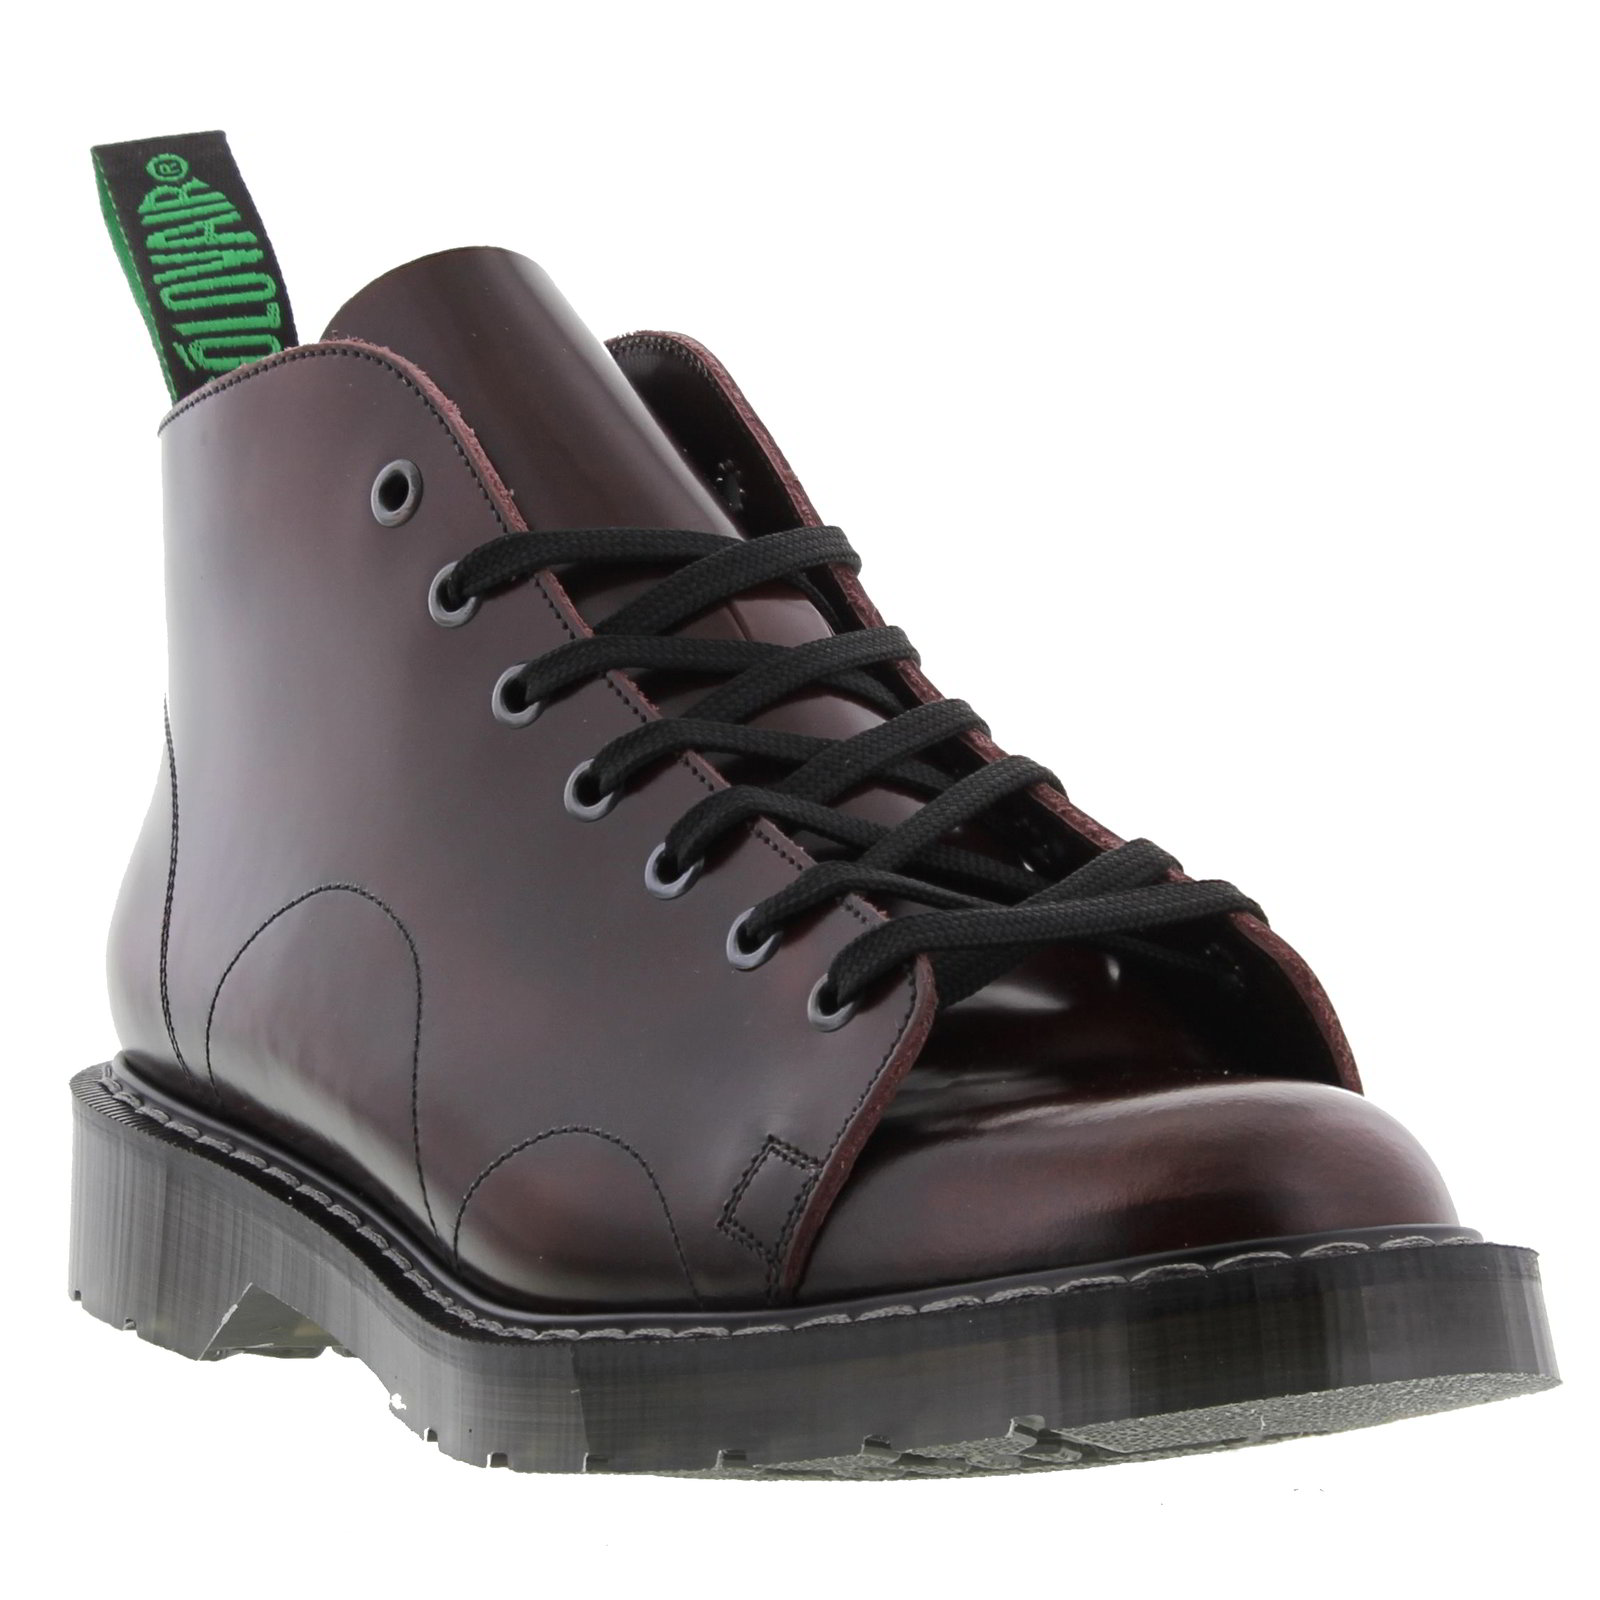 nps solovair made in mens 7 eye leather monkey